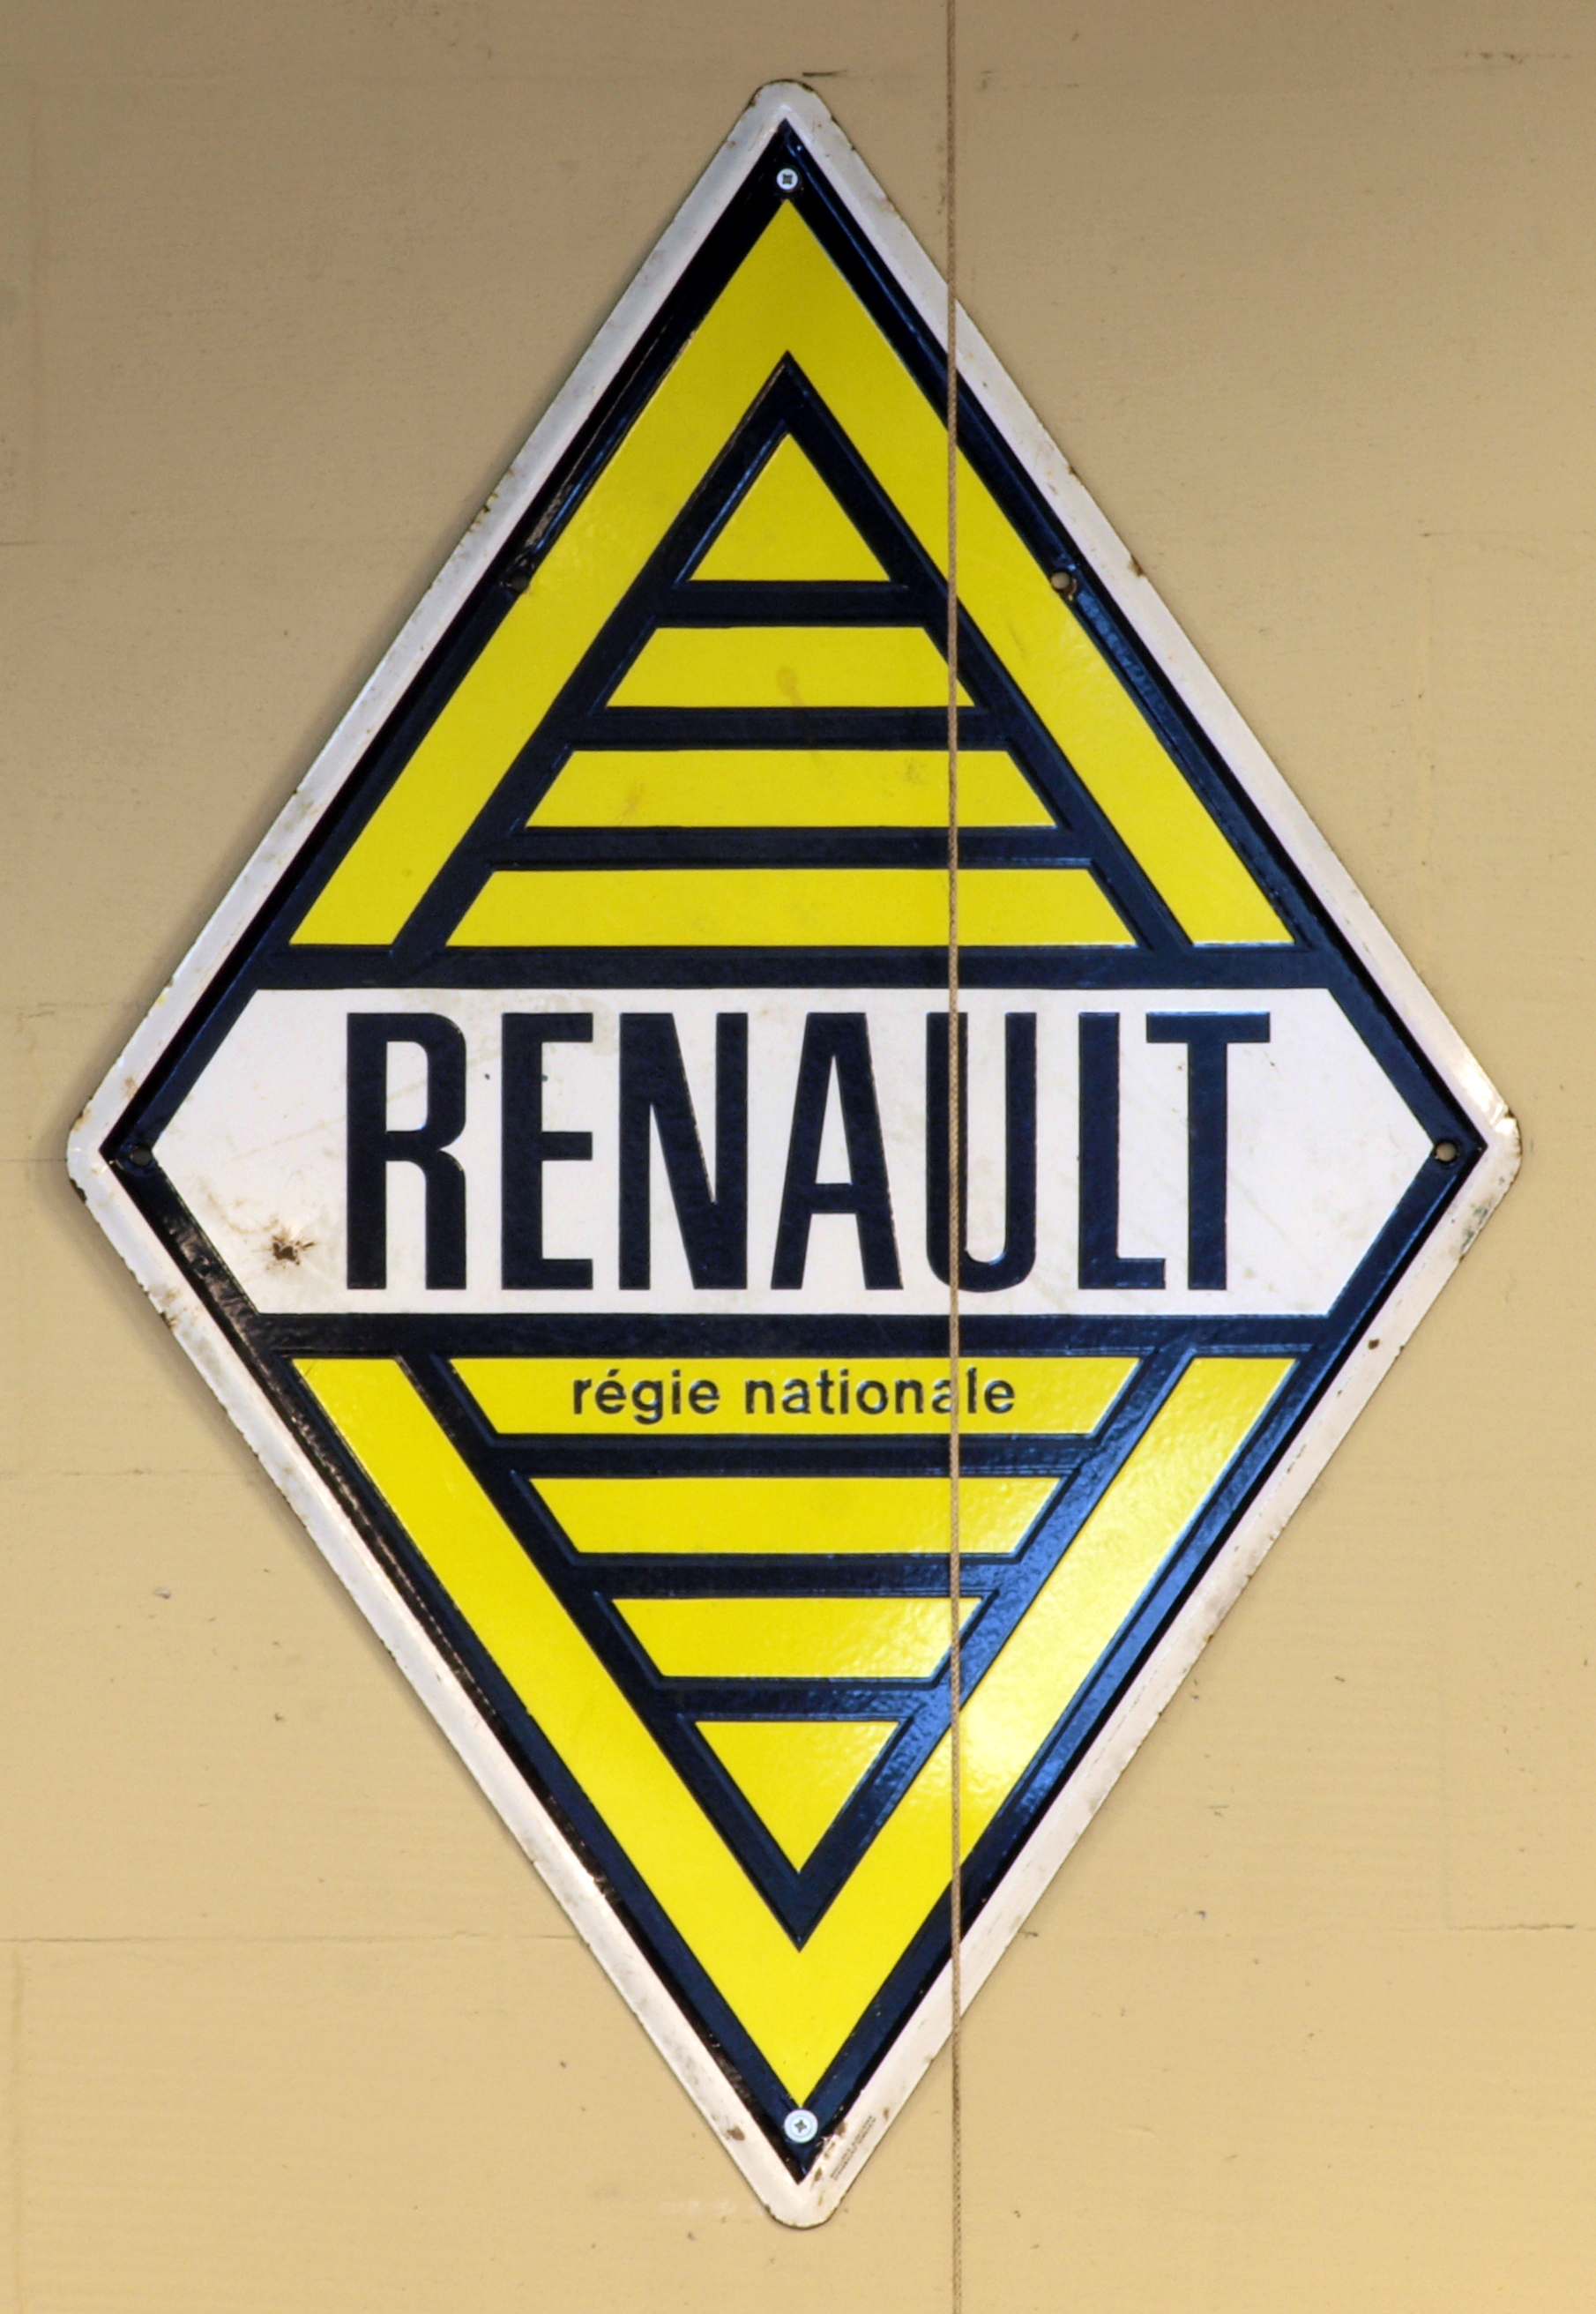 FileYellow Renault Regie Nationale Enamel Advert Sign At The Den Hartog Ford Museum